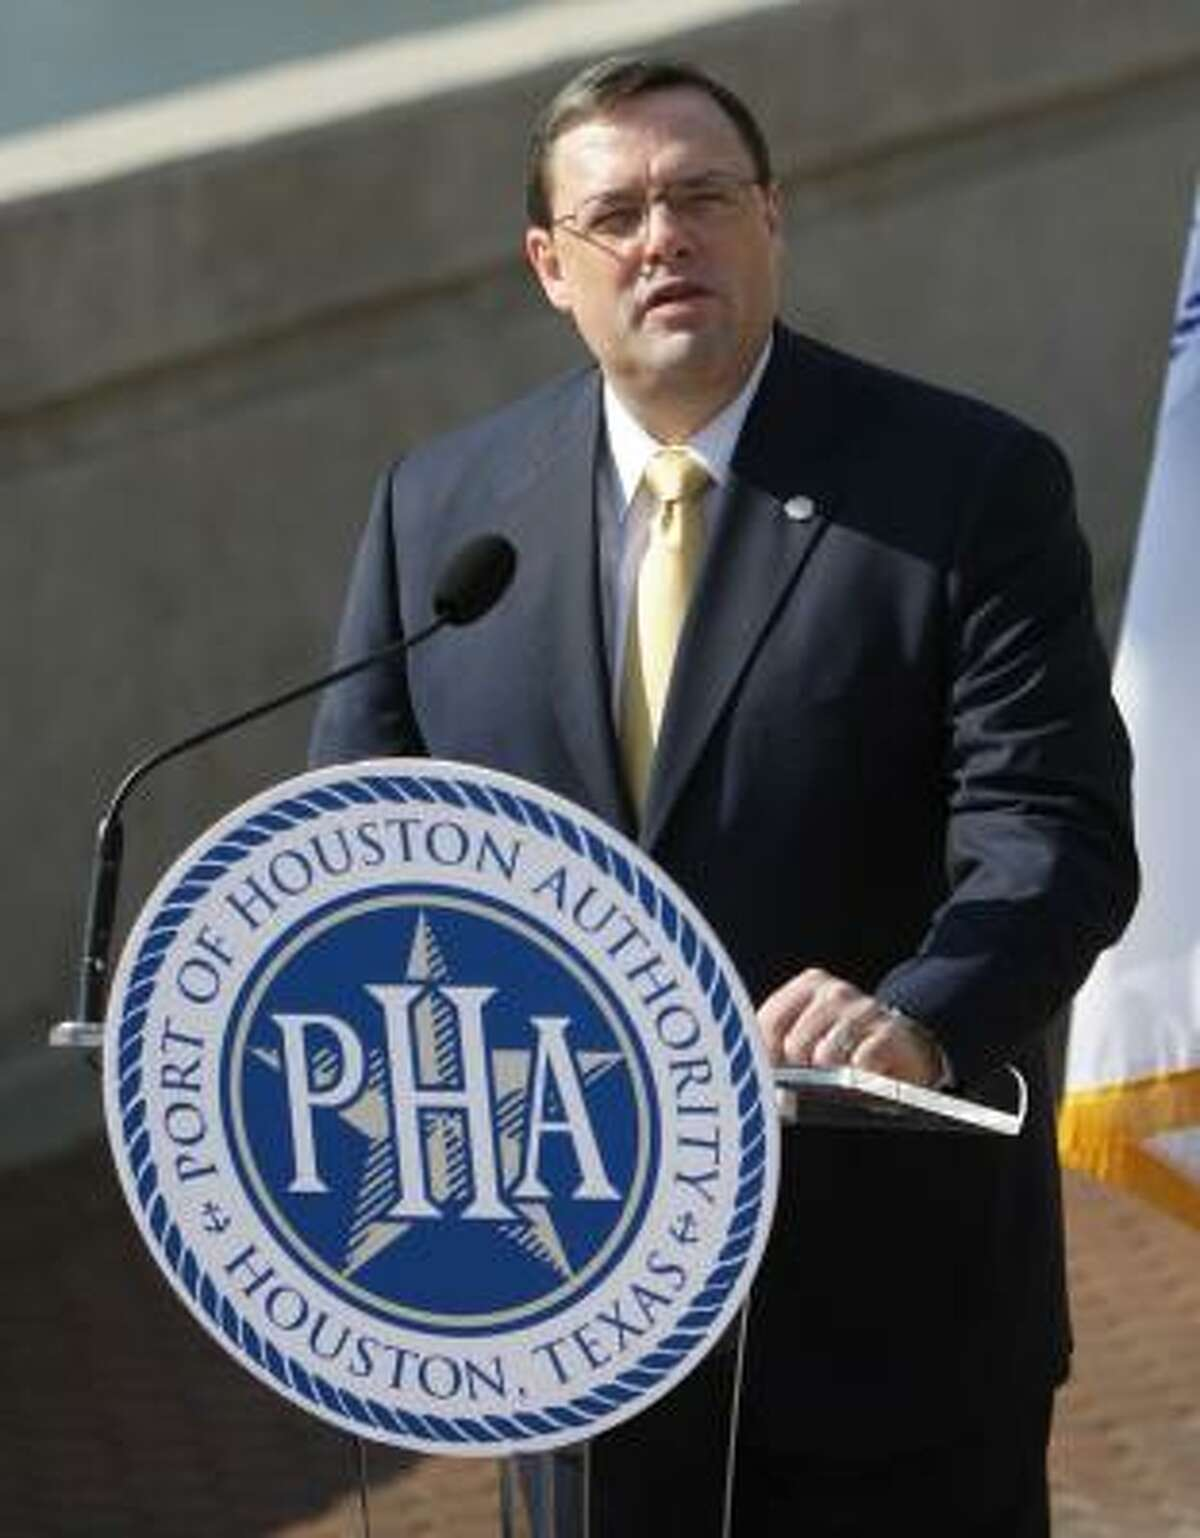 Alec Dreyer, CEO of the Port of Houston Authority, speaks at a news conference, Oct. 19, 2010.